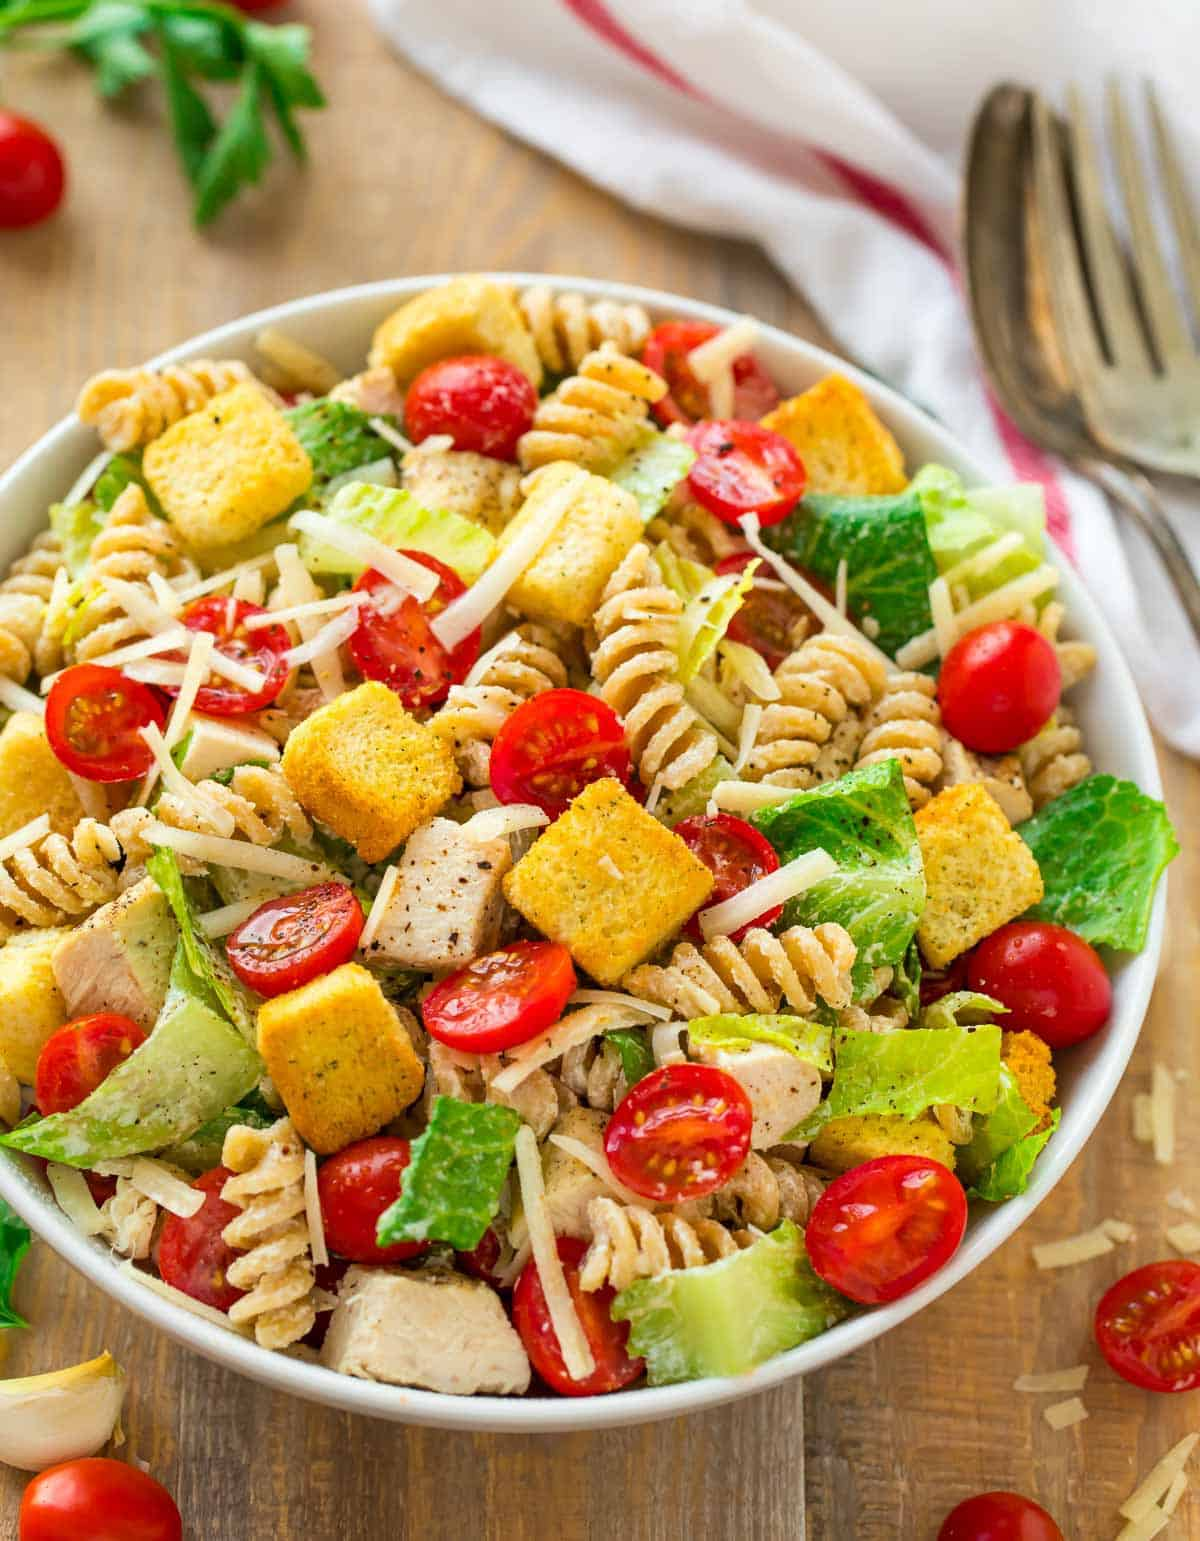 Healthy Chicken Caesar Pasta Salad made with whole wheat pasta in a serving bowl.